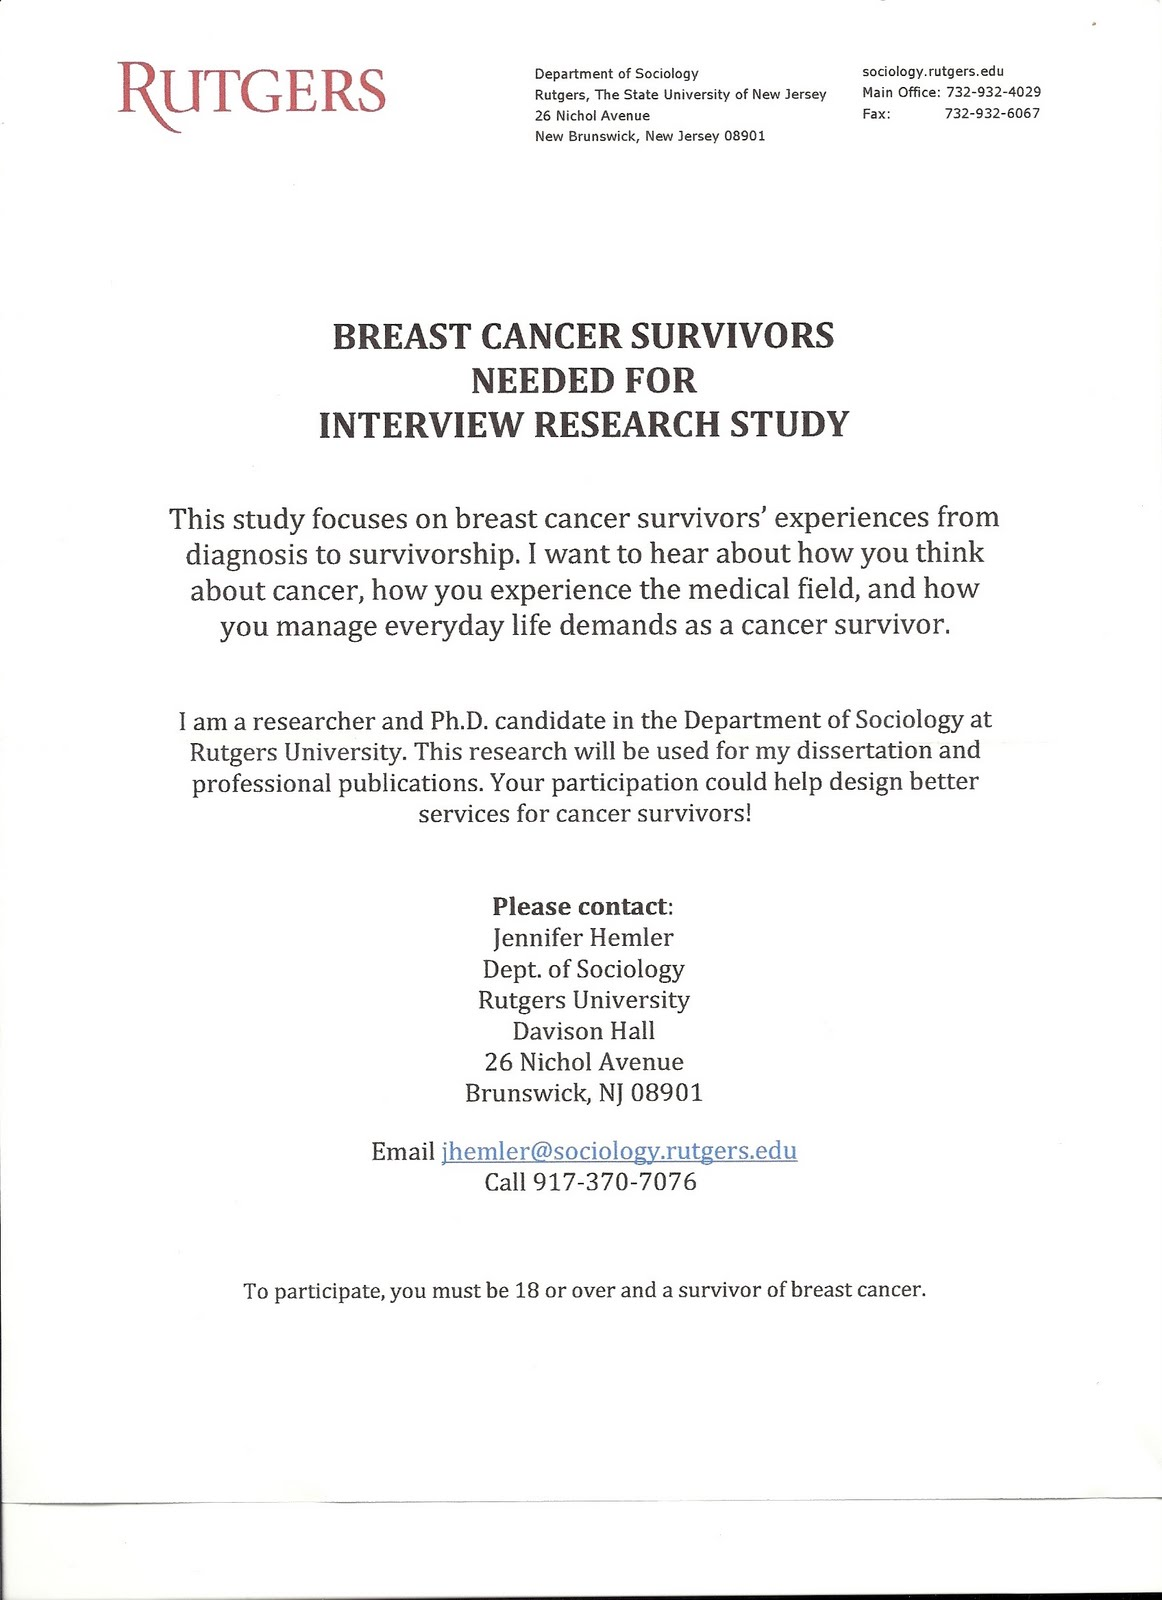 breast cancer study guide Breast cancer is a disease in which malignant (cancer) cells form in the tissues of the breast a family history of breast cancer and other factors increase the risk of breast cancer anything that increases your chance of getting a disease is called a risk factor having a risk factor does not mean .